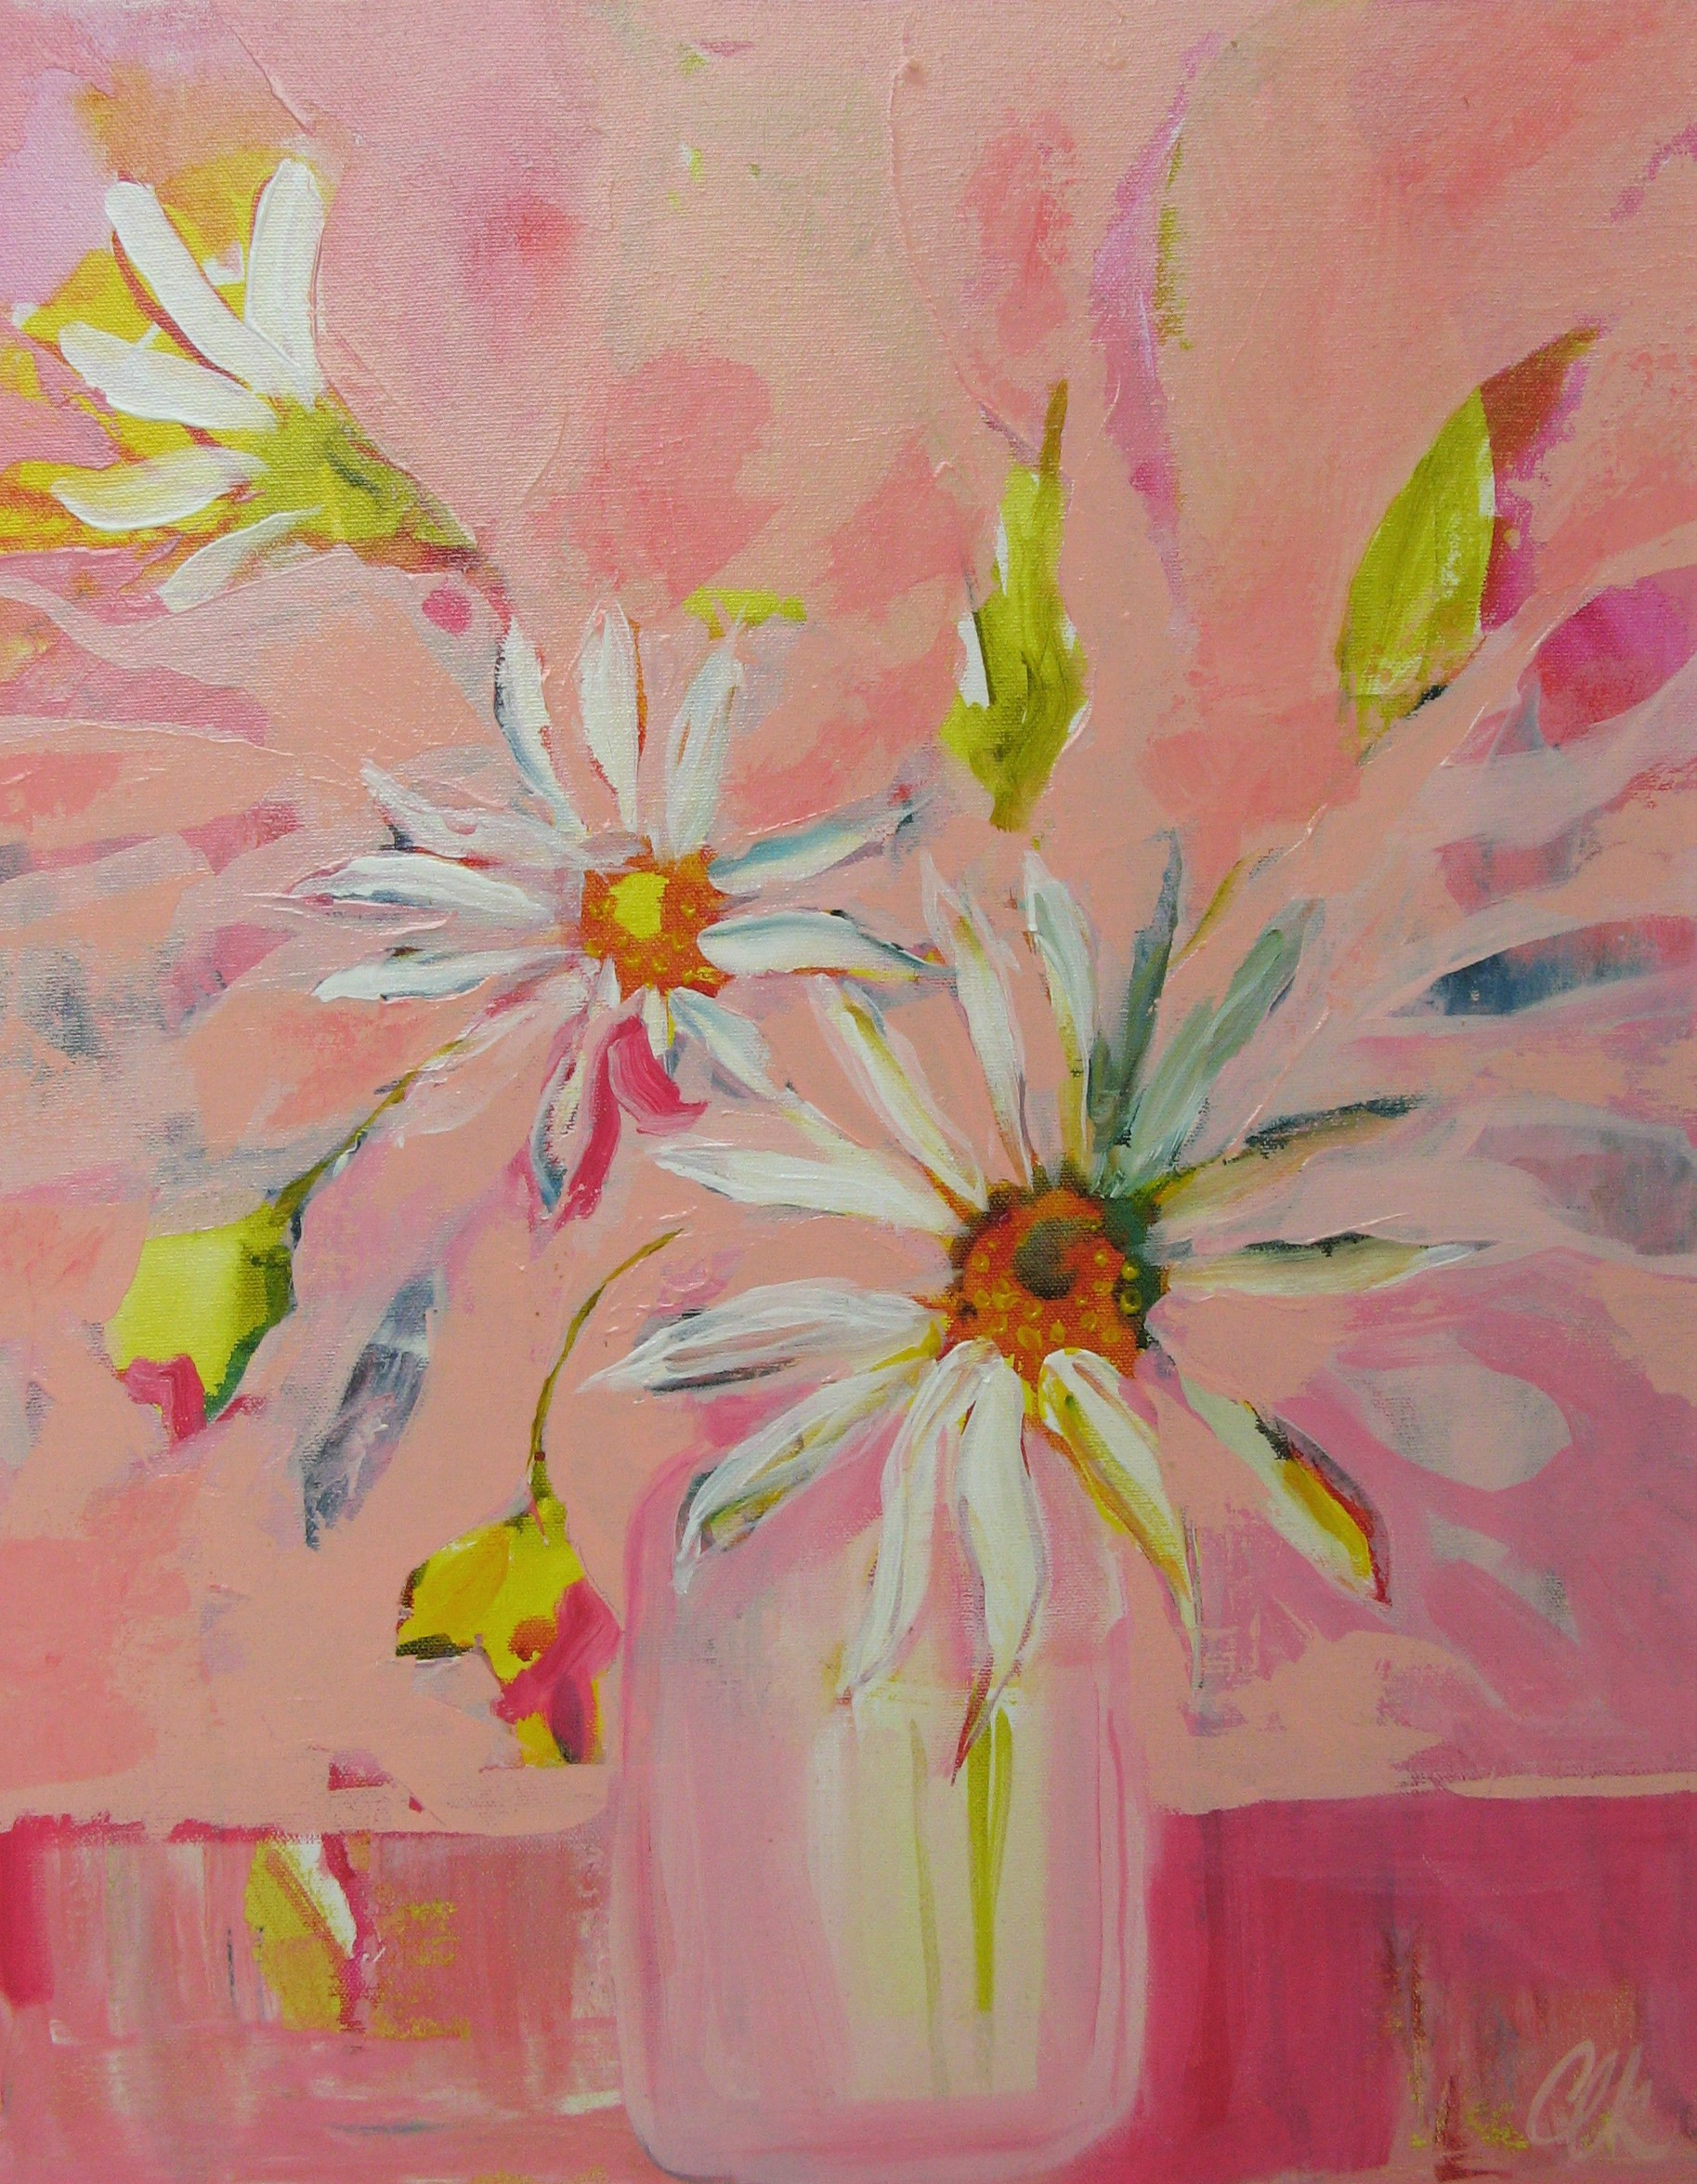 Spring Dream - acrylic on canvas 20x16